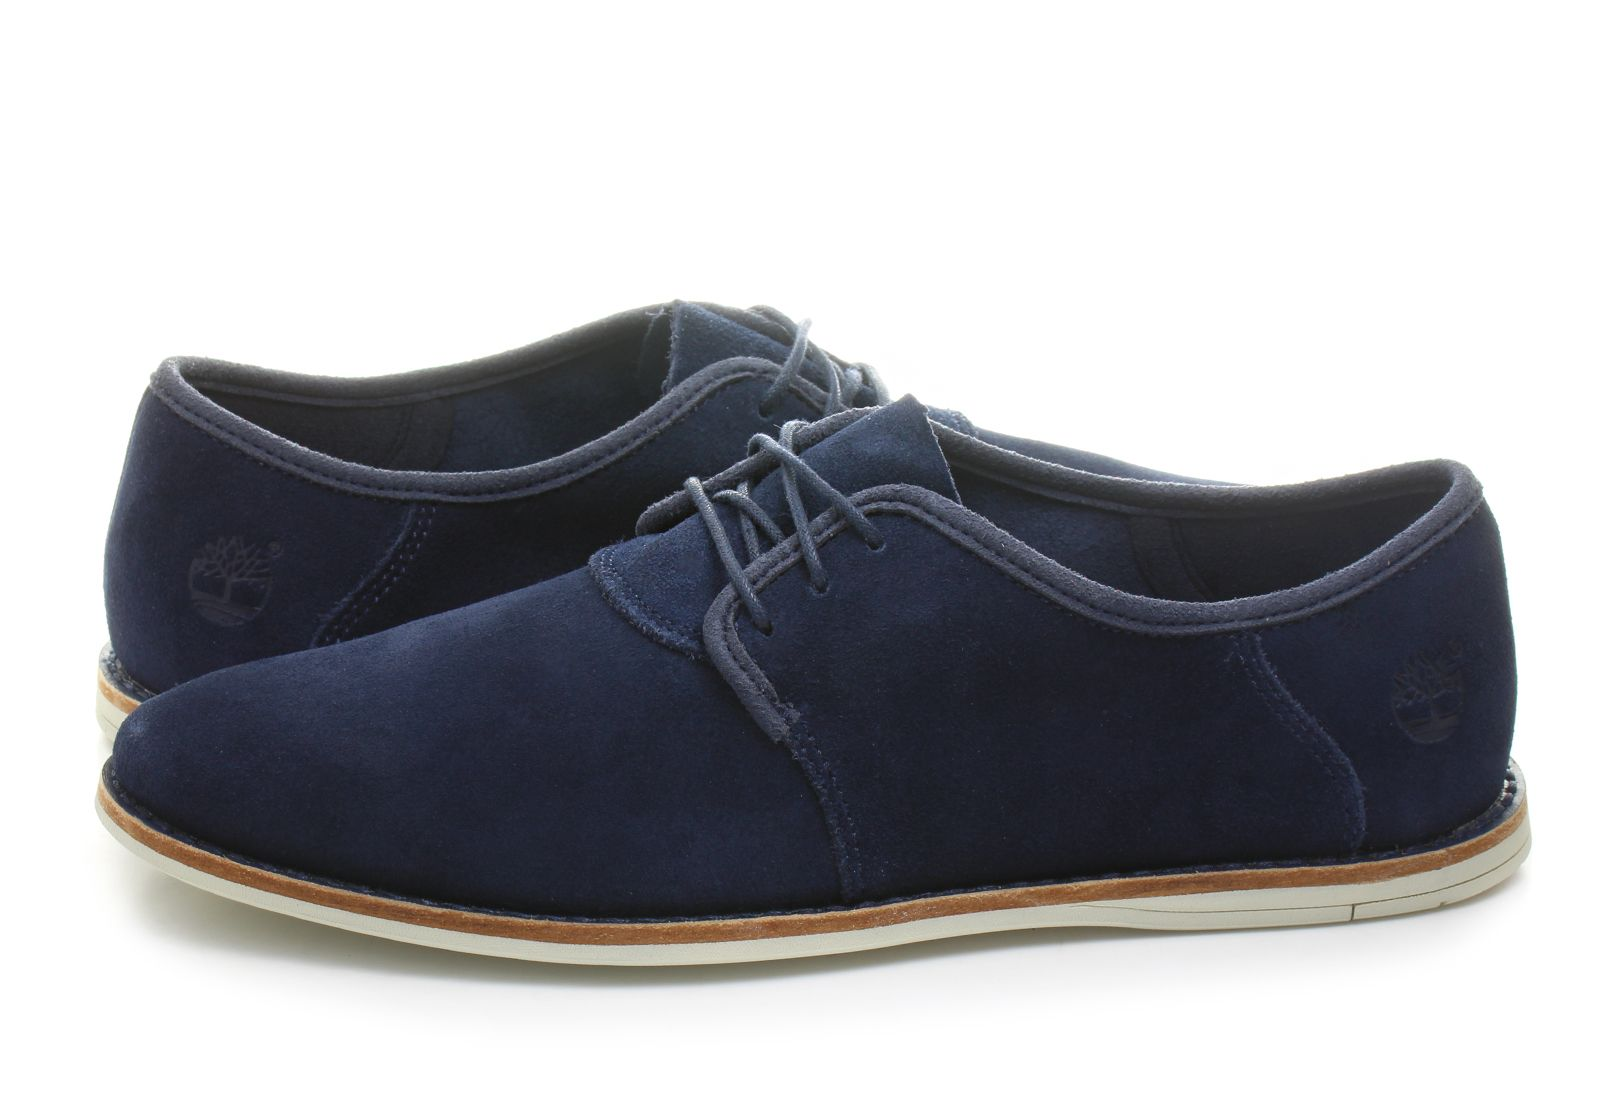 Timberland Amherst Slip-on Oxford obuwie